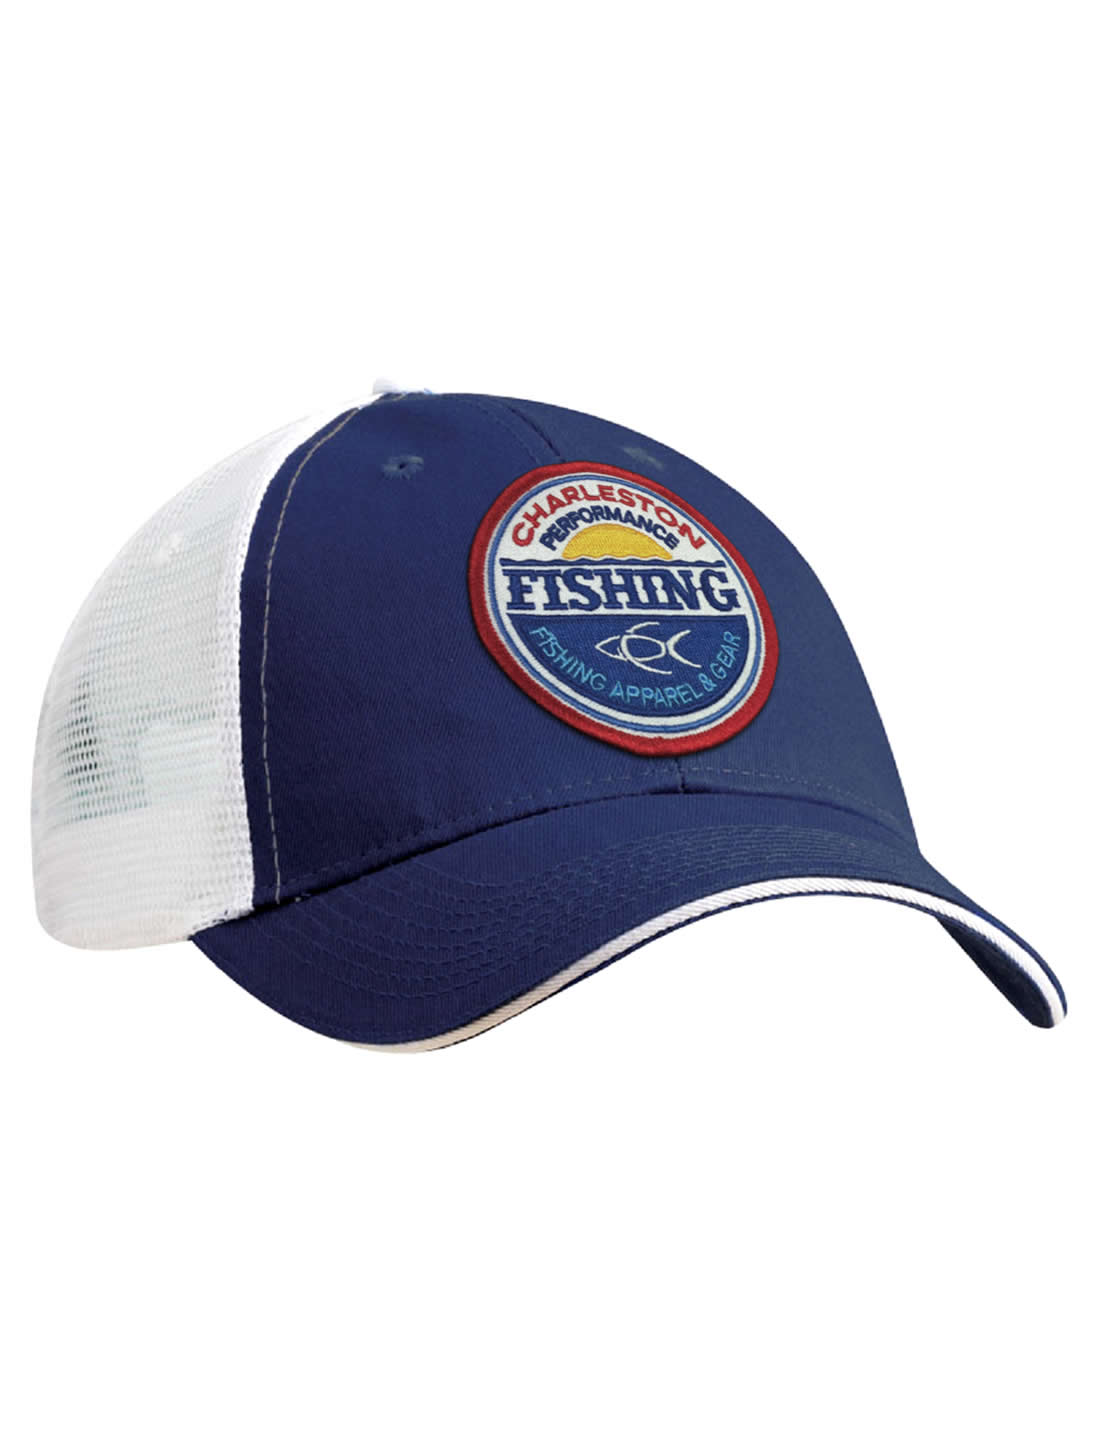 CPF Sunset Fishing Royal Blue and White Mesh Back Fishing Hat - CPF Gear 697ded20363